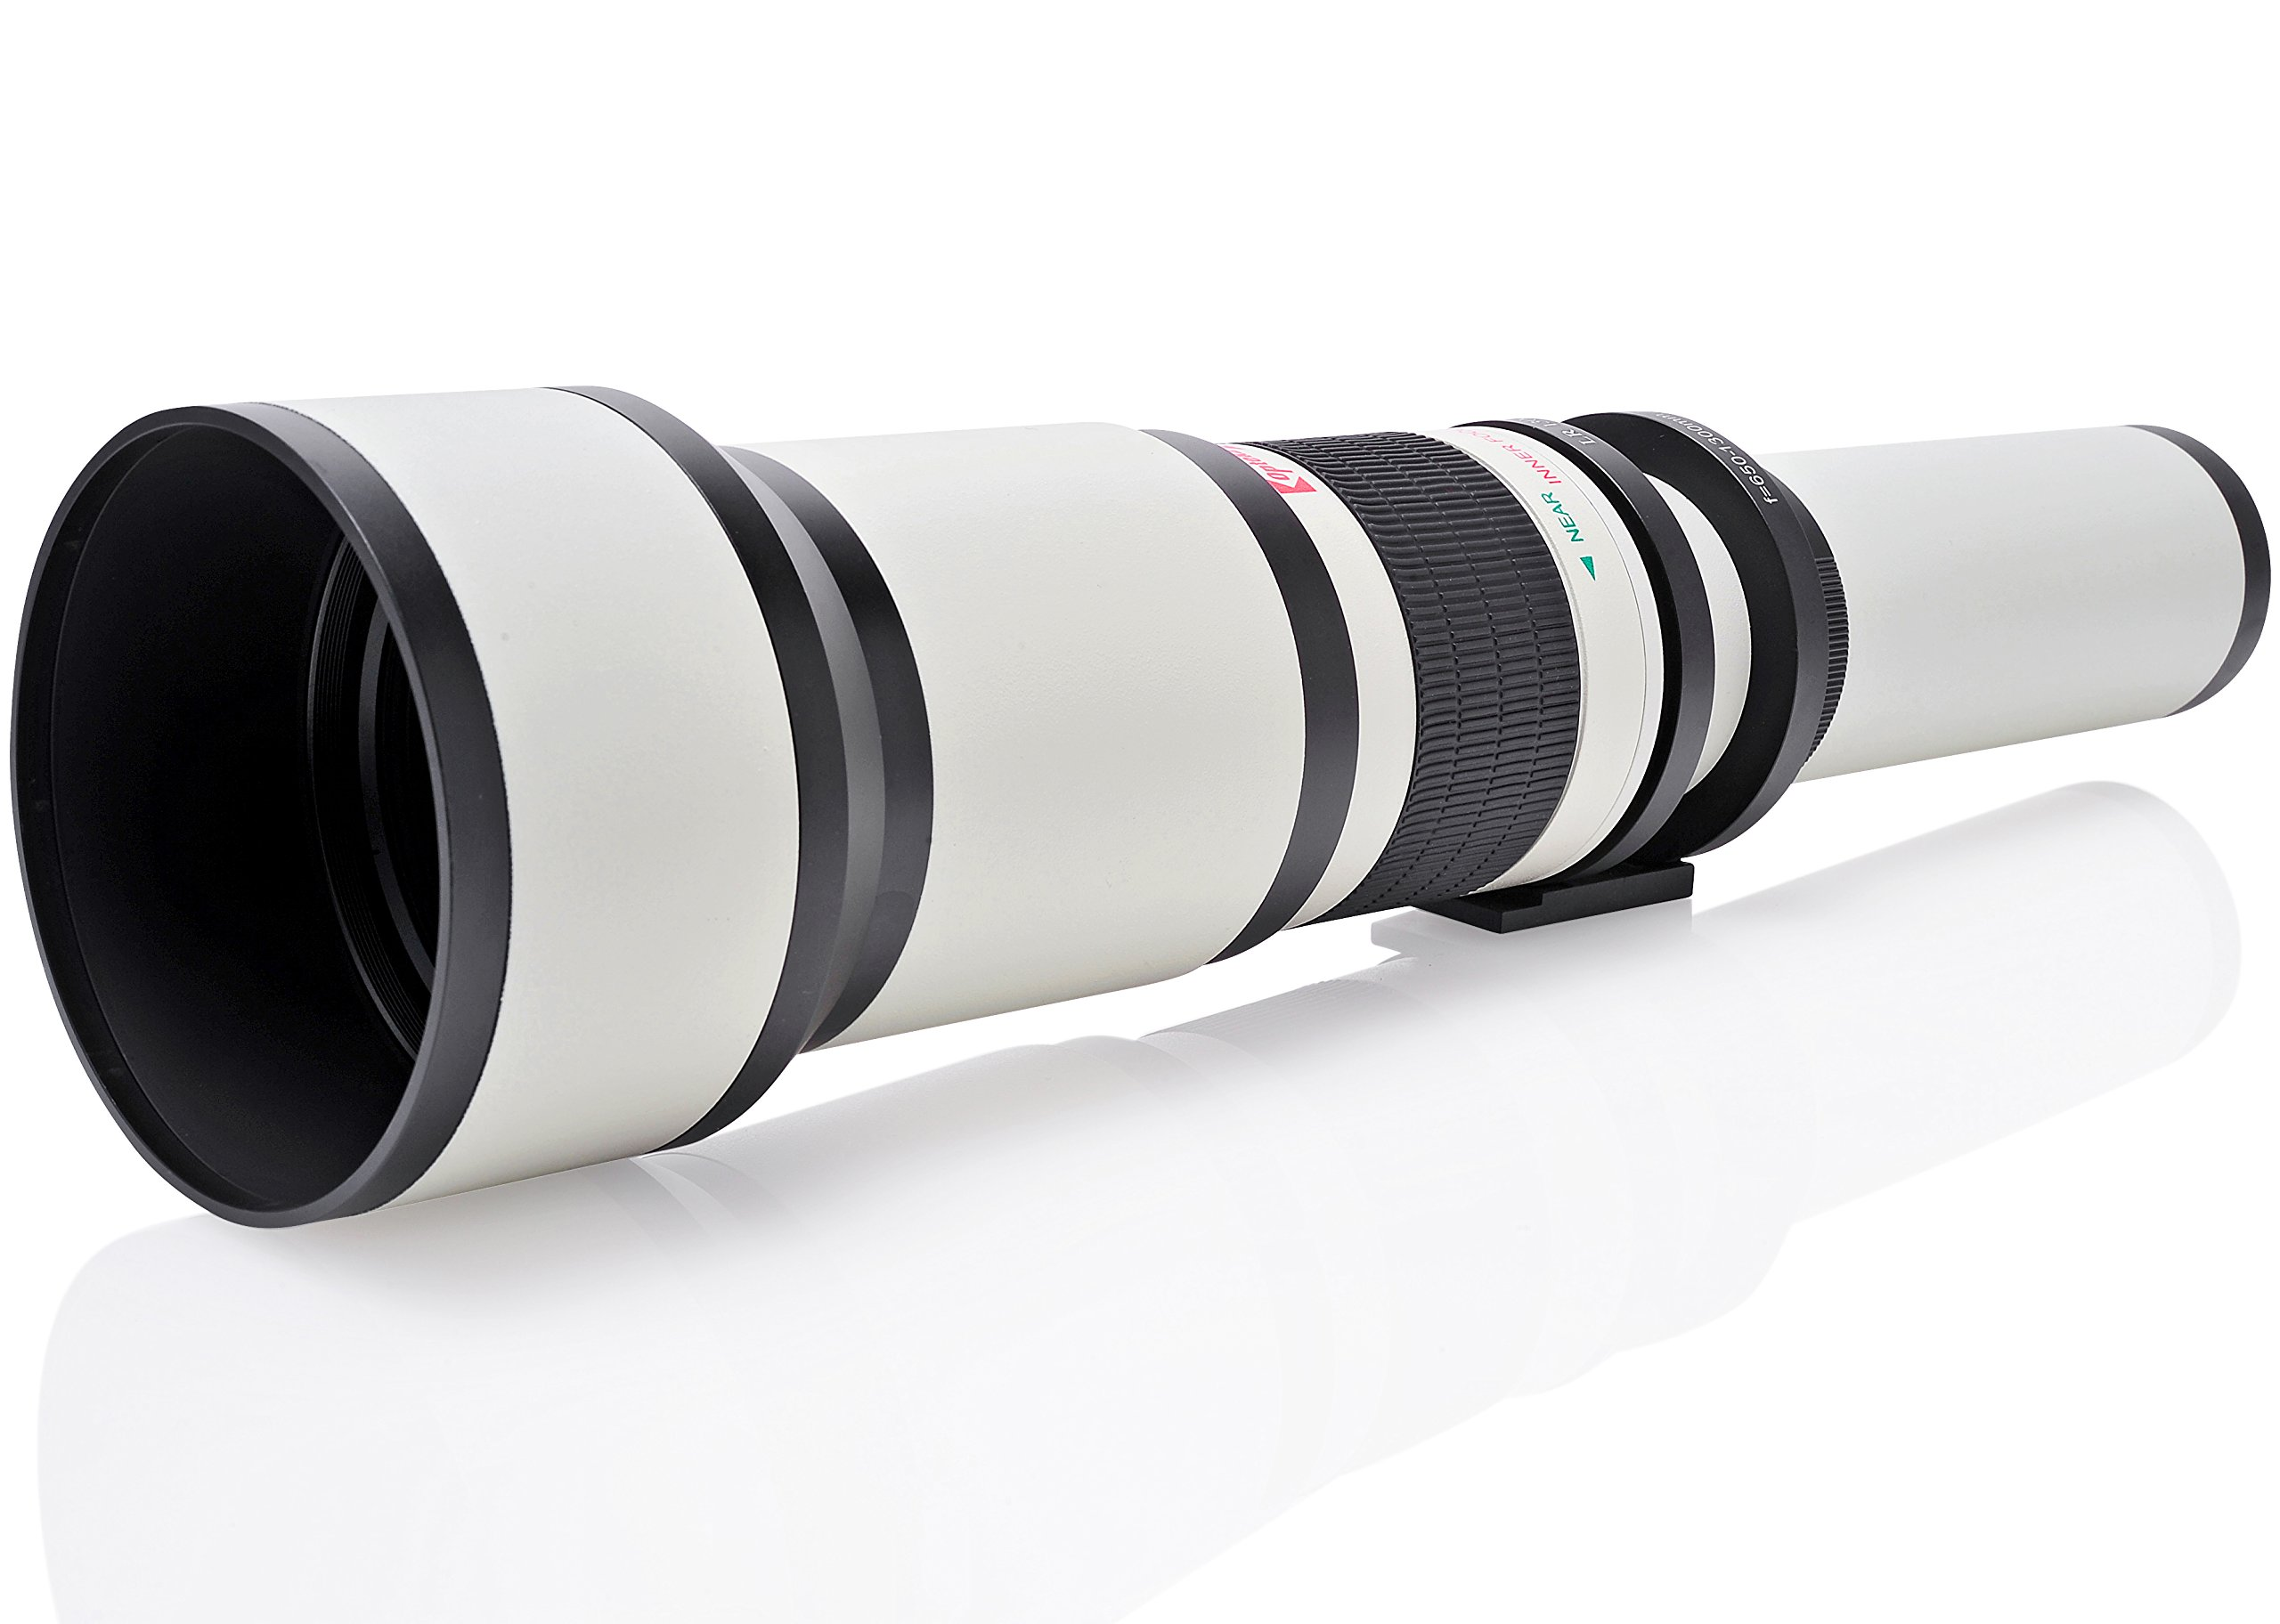 Opteka 650-1300mm (with 2X- 1300-2600mm) Telephoto Zoom Lens for Canon EOS 7D, 6D, 5D, 5Ds, 1Ds, 80D, 77D, 70D, 60D, 60Da, 40D, T7s, T7i, T6s, T6i, T6, T5i, T5, T4i, T3i and SL1 Digital SLR Cameras by Opteka